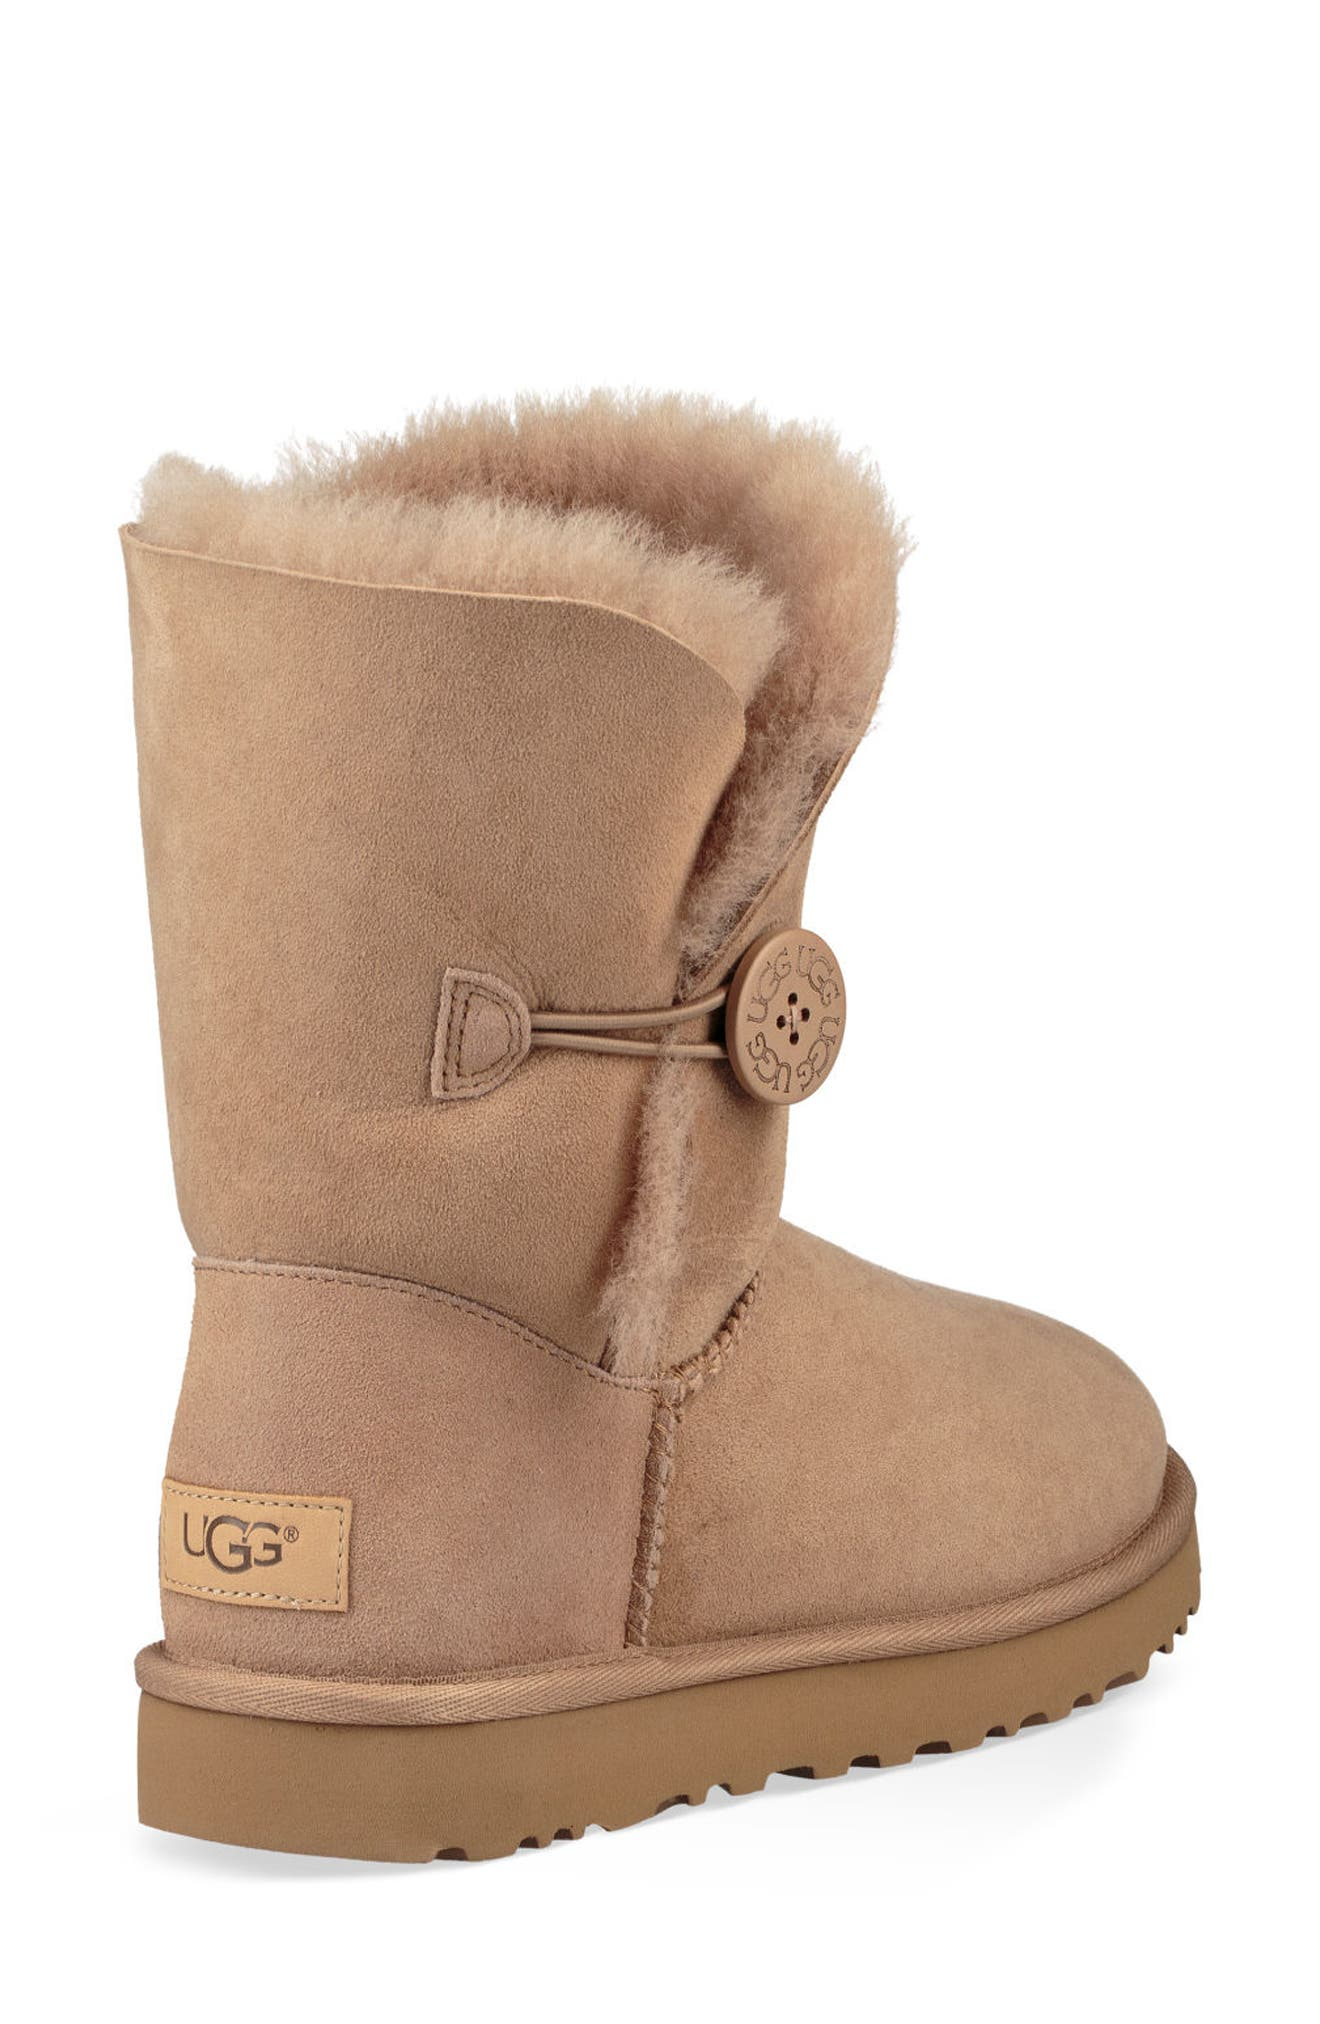 'Bailey Button II' Boot,                             Alternate thumbnail 2, color,                             Fawn Suede